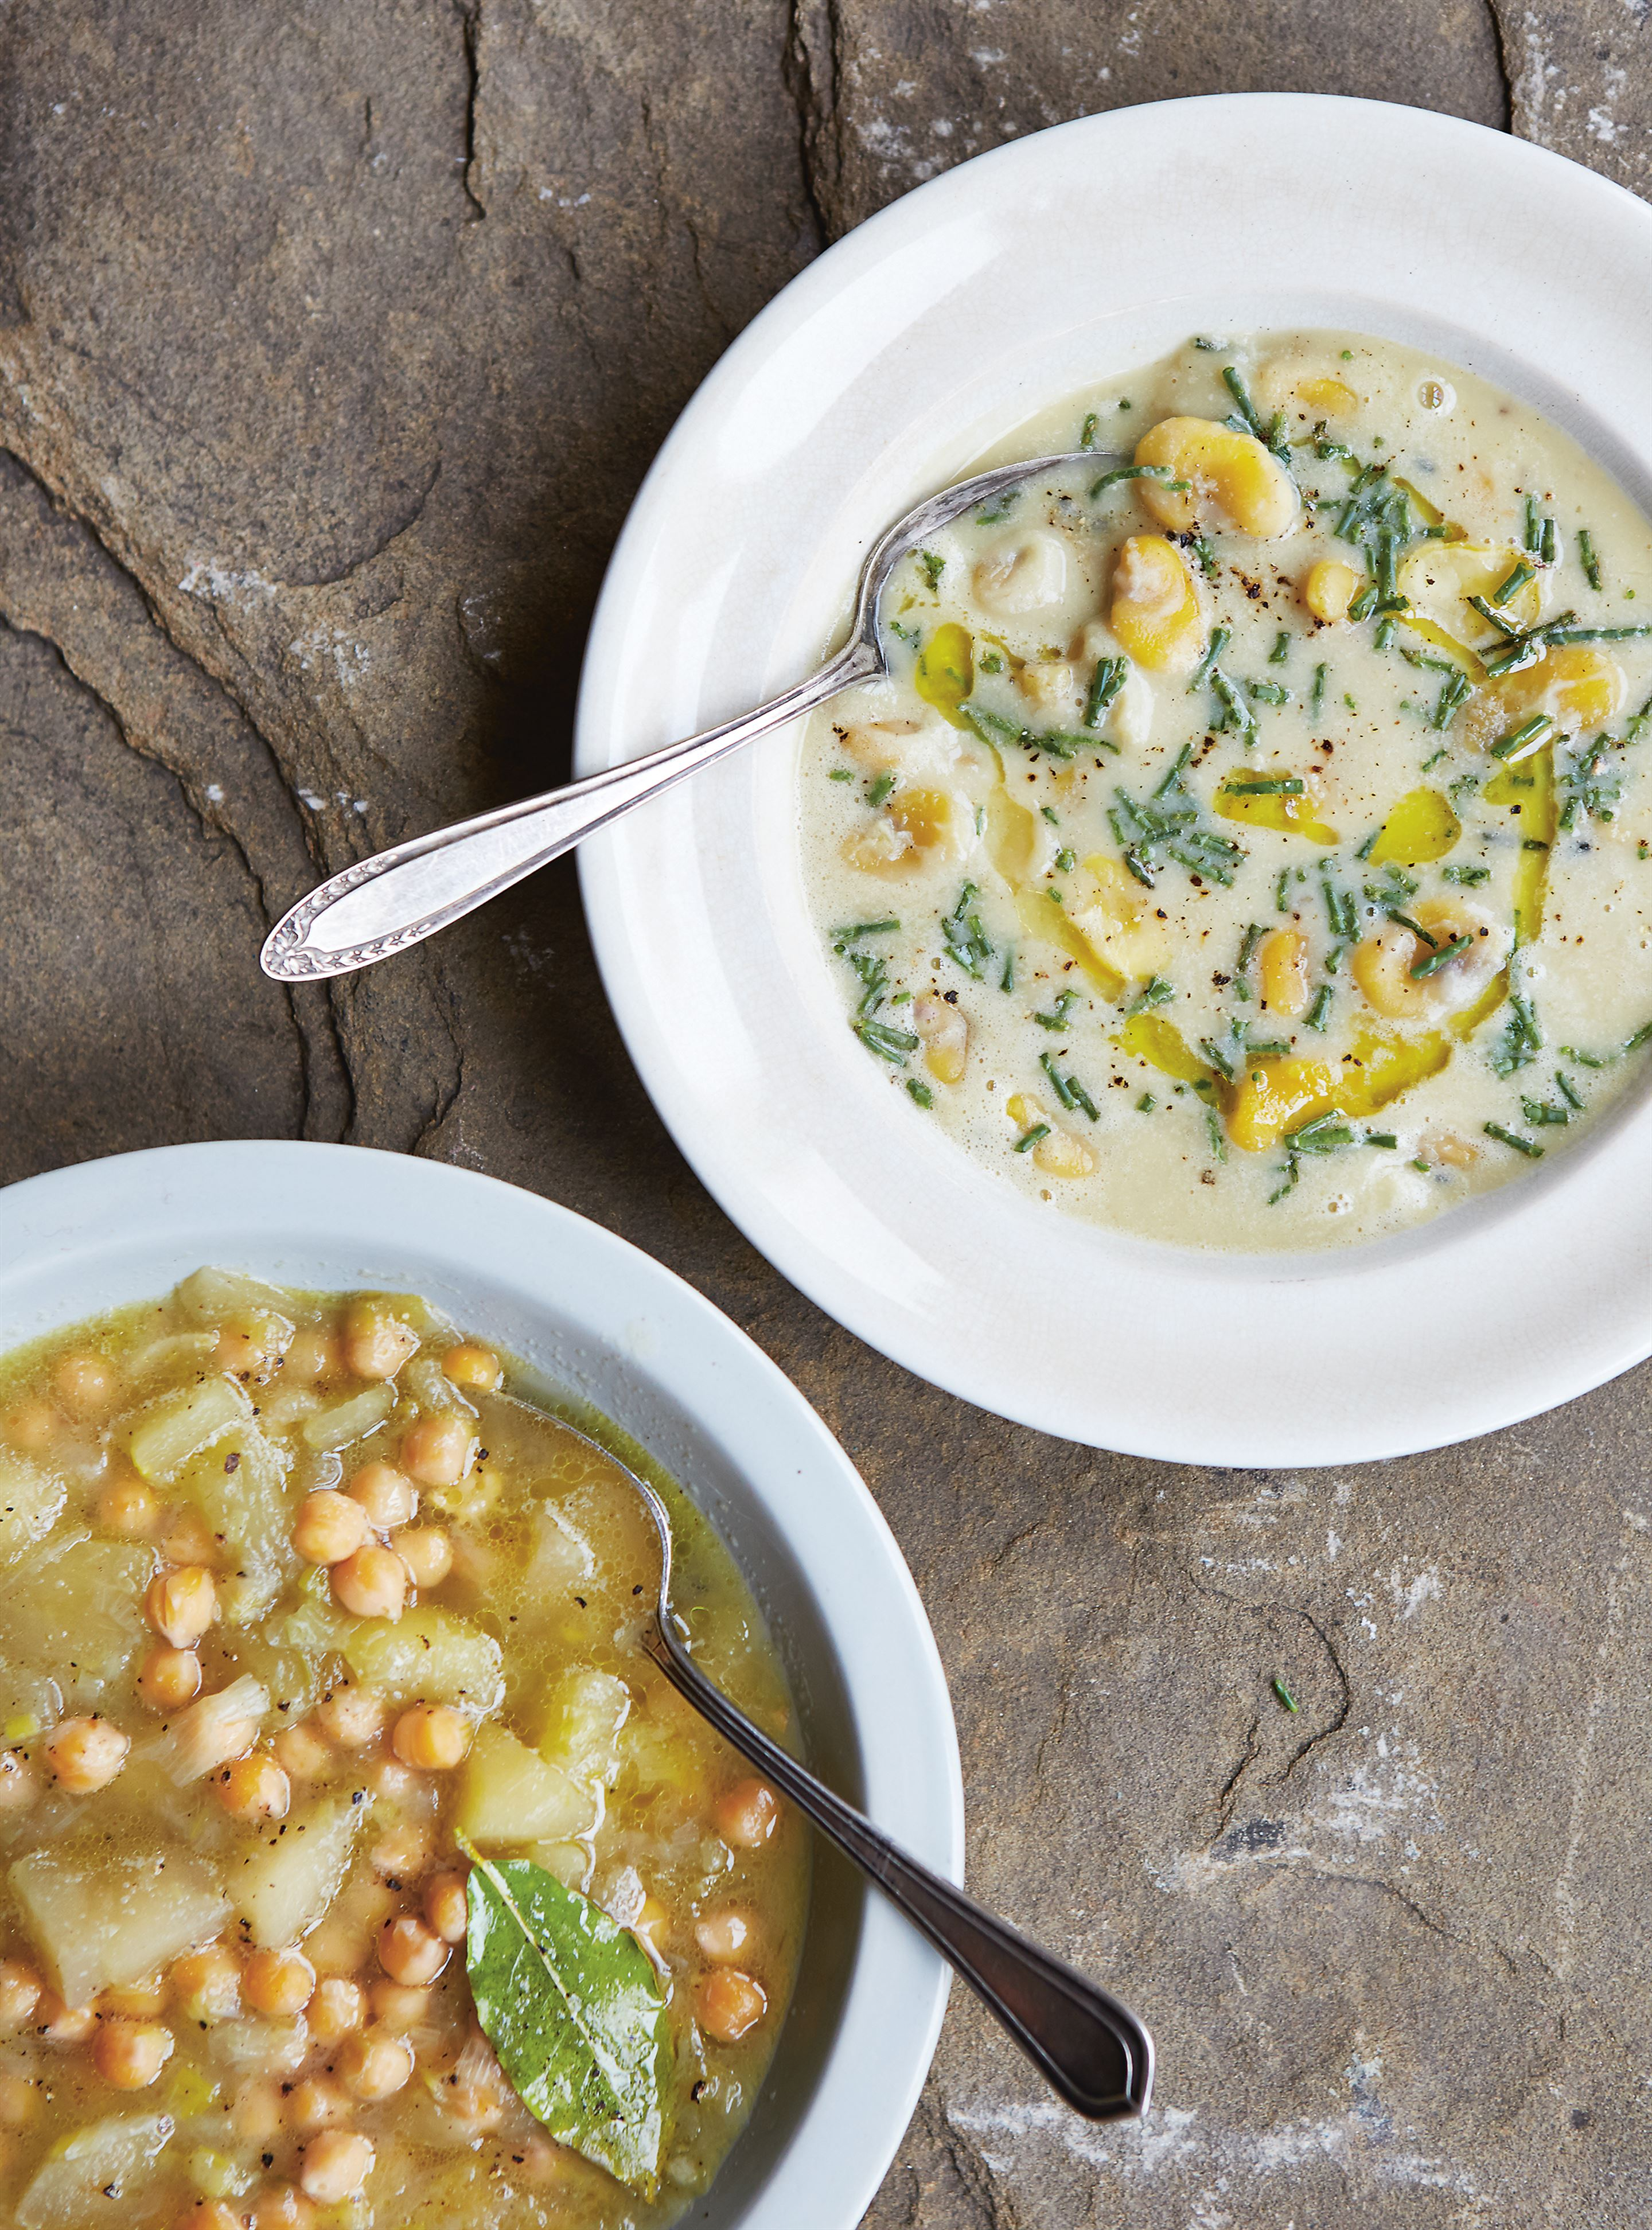 Broad bean & fennel seed soup